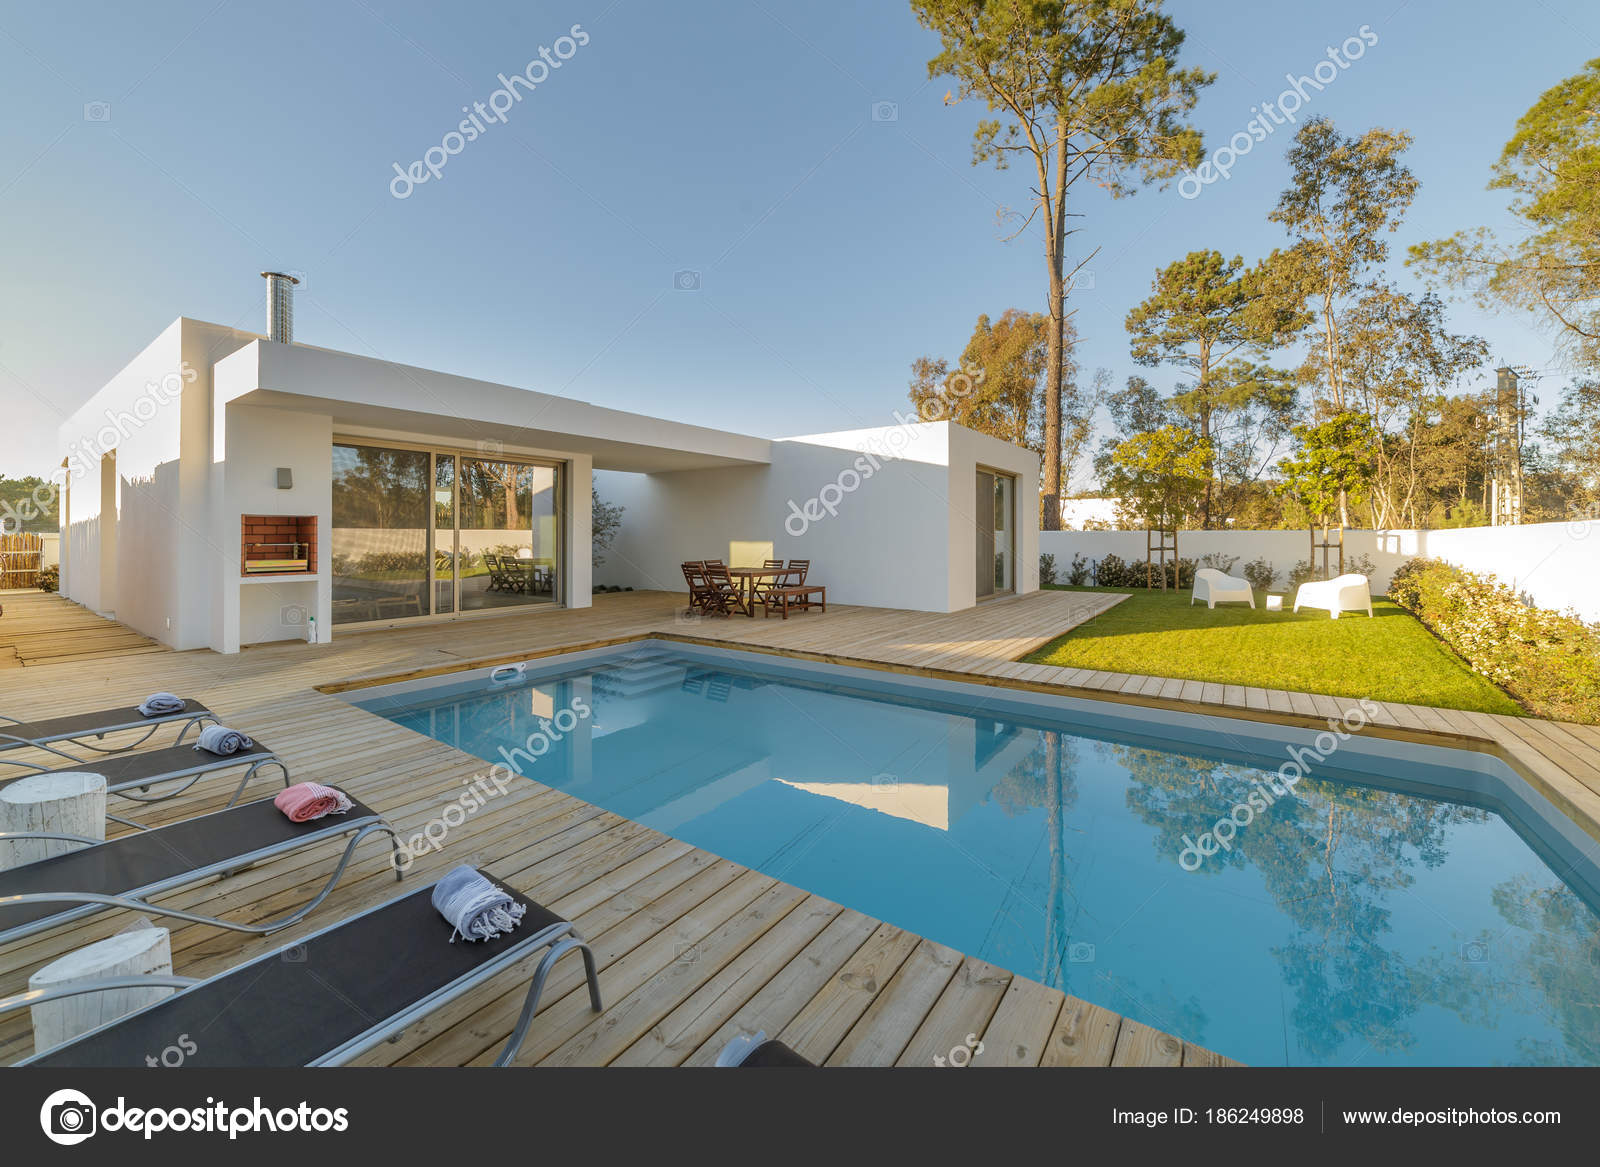 Garden With Swimming Pool modern house with garden swimming pool and wooden deck